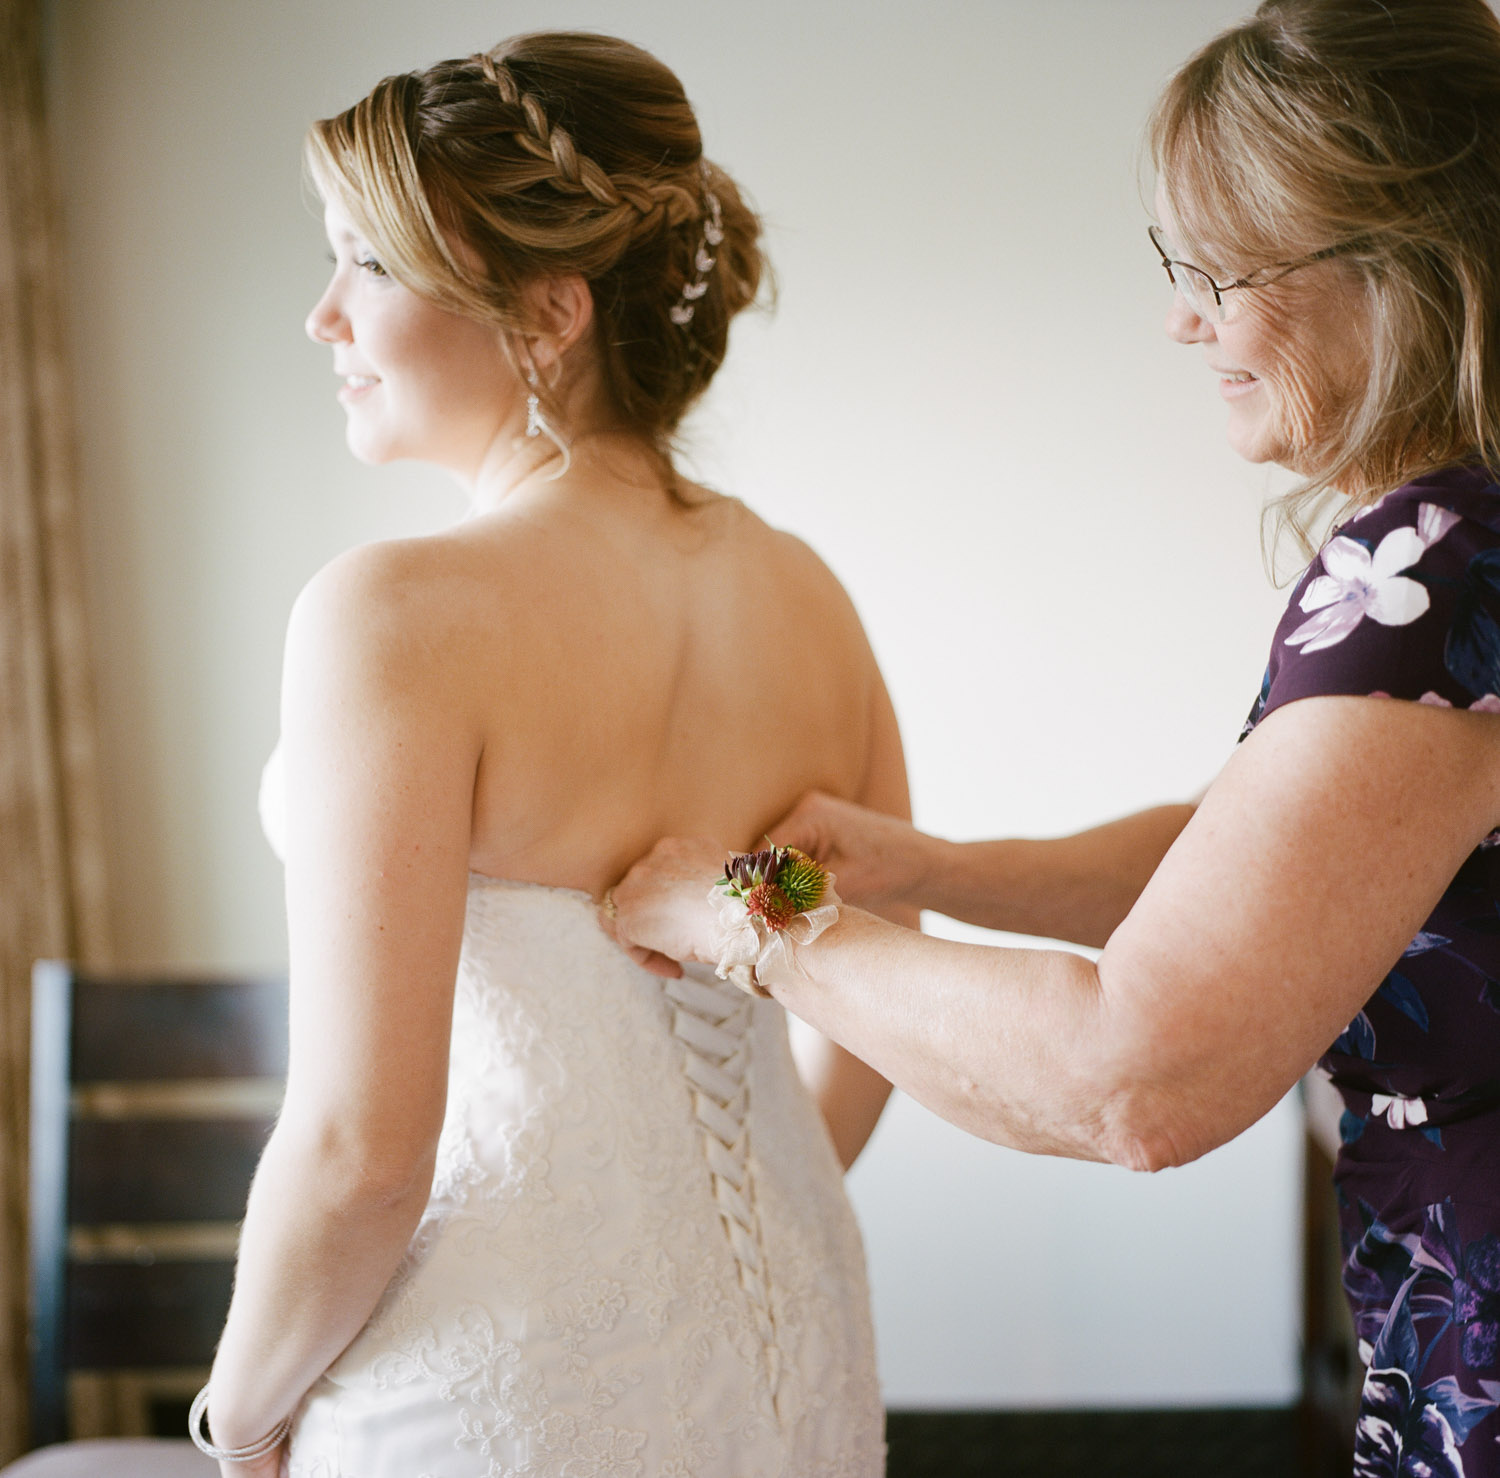 Mother of bride helping daughter with wedding dress in Kamloops at Hotel 540 wedding